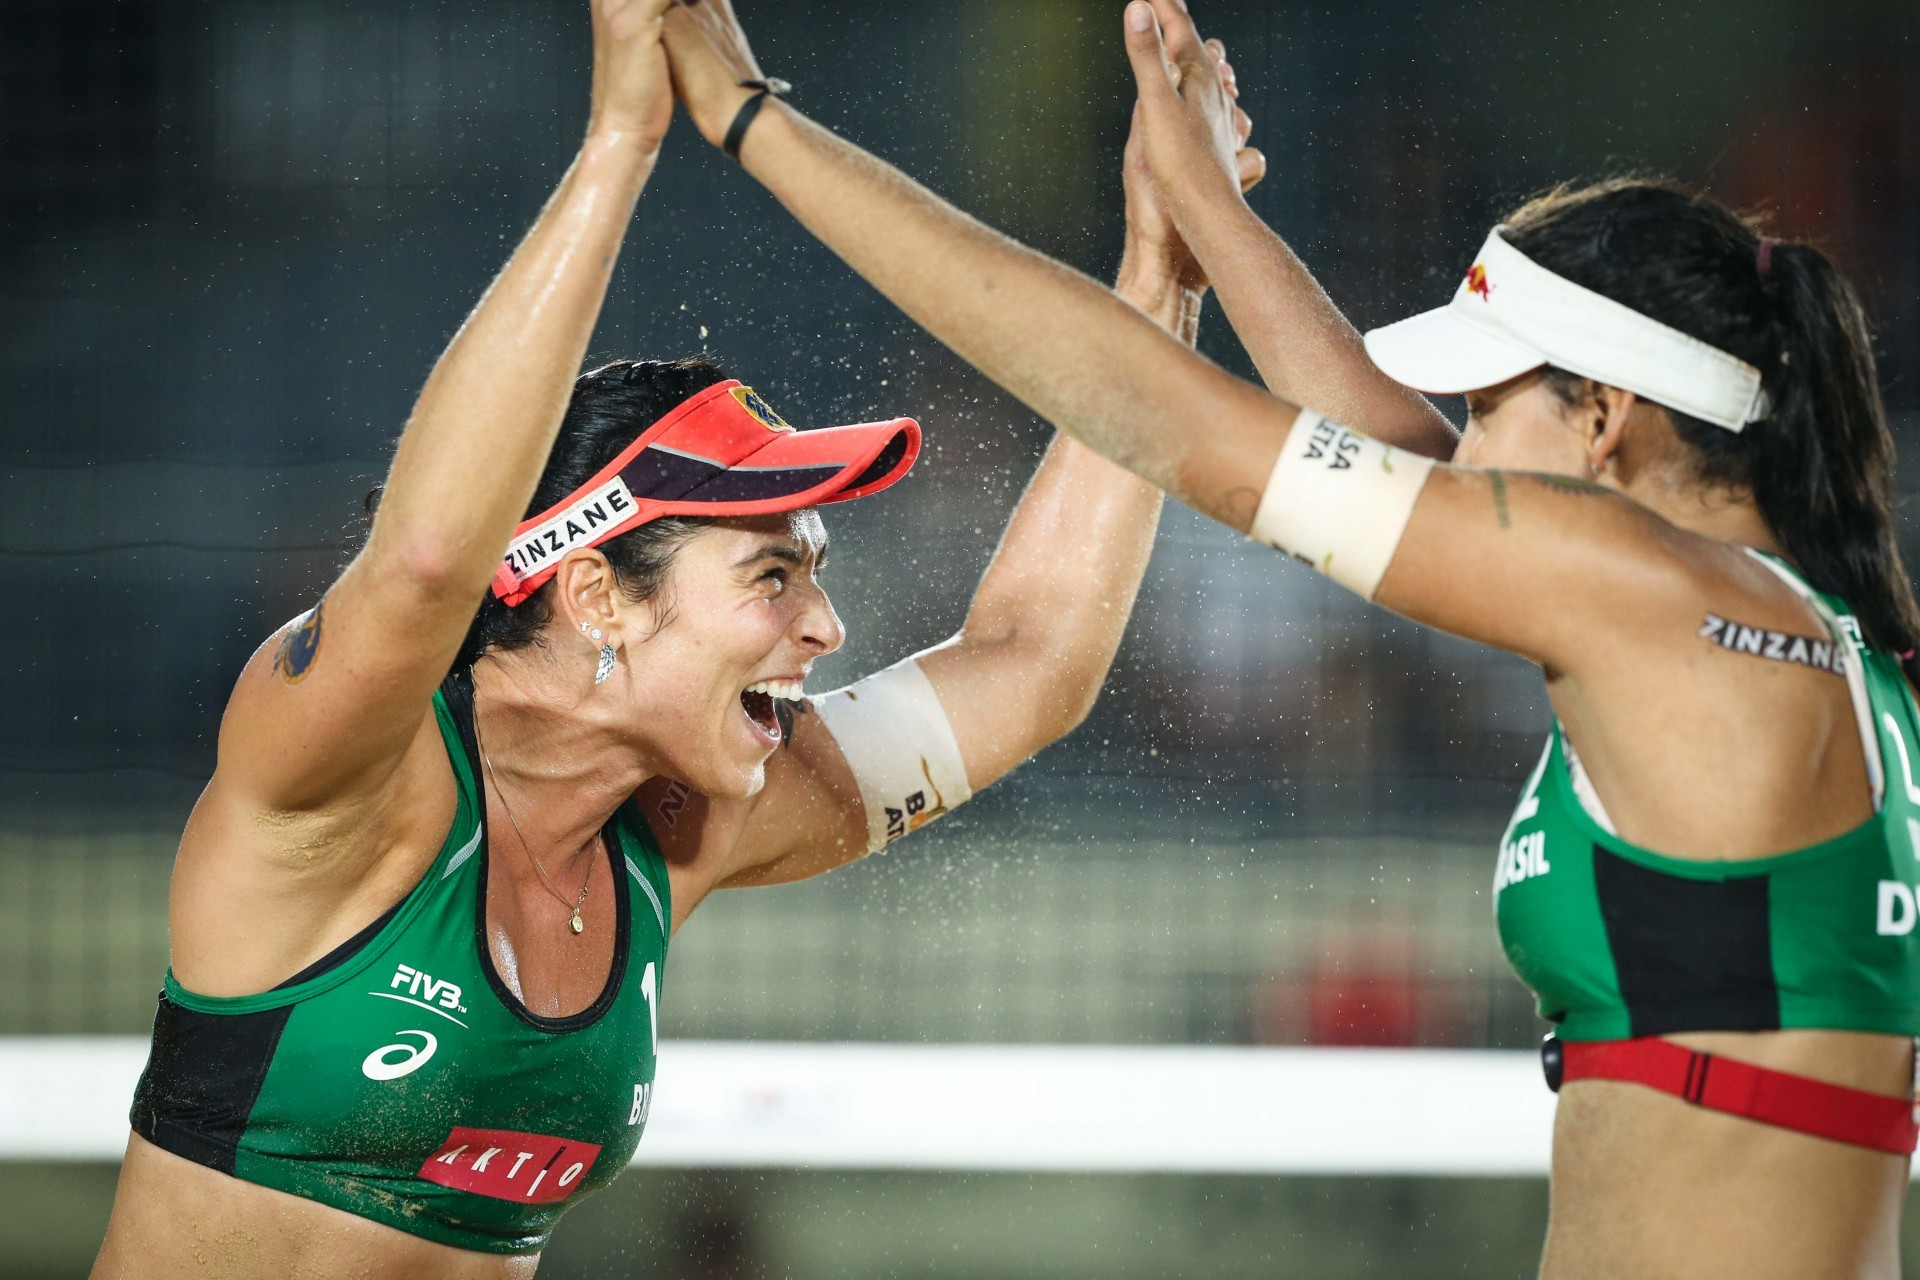 Ágatha and Duda downed Klineman and Ross in the Tokyo gold medal match (Photocredit: FIVB)